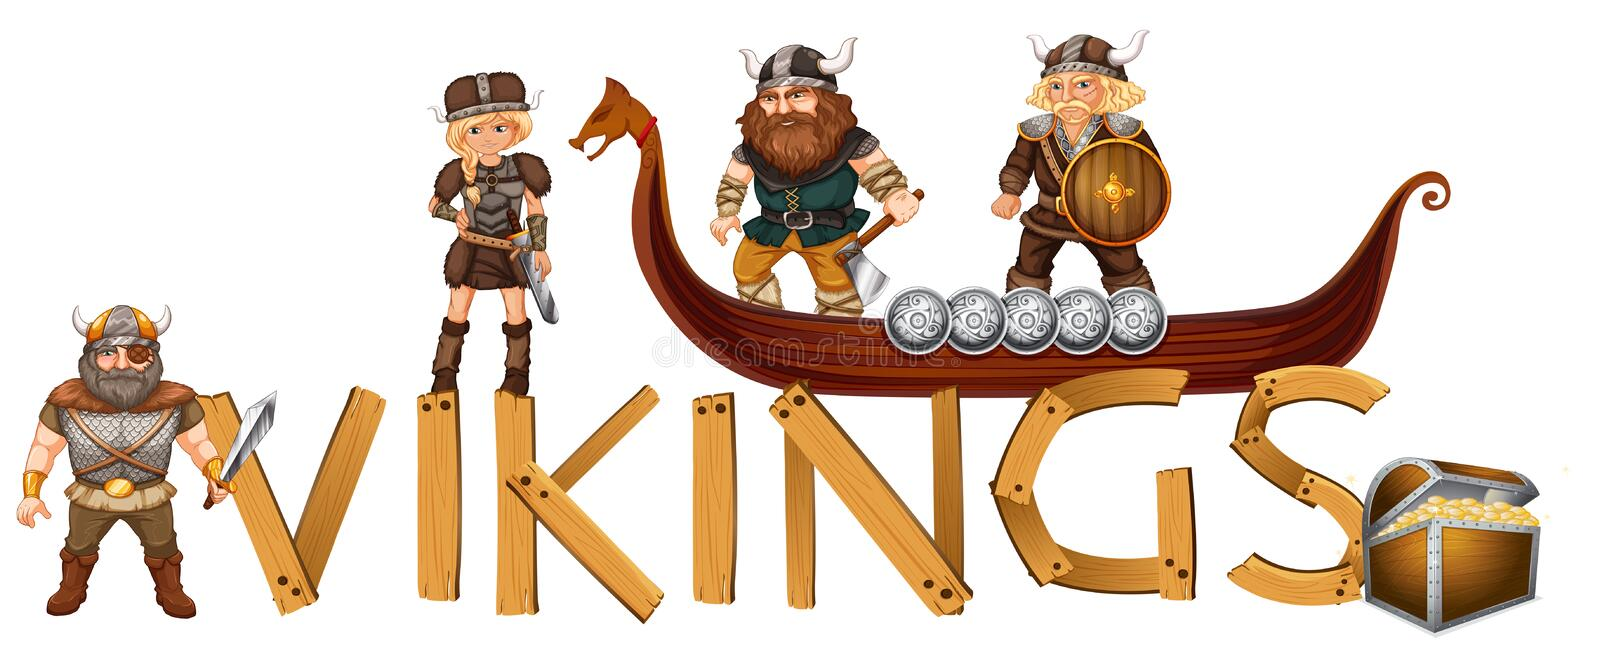 vikings illustration libre de droits